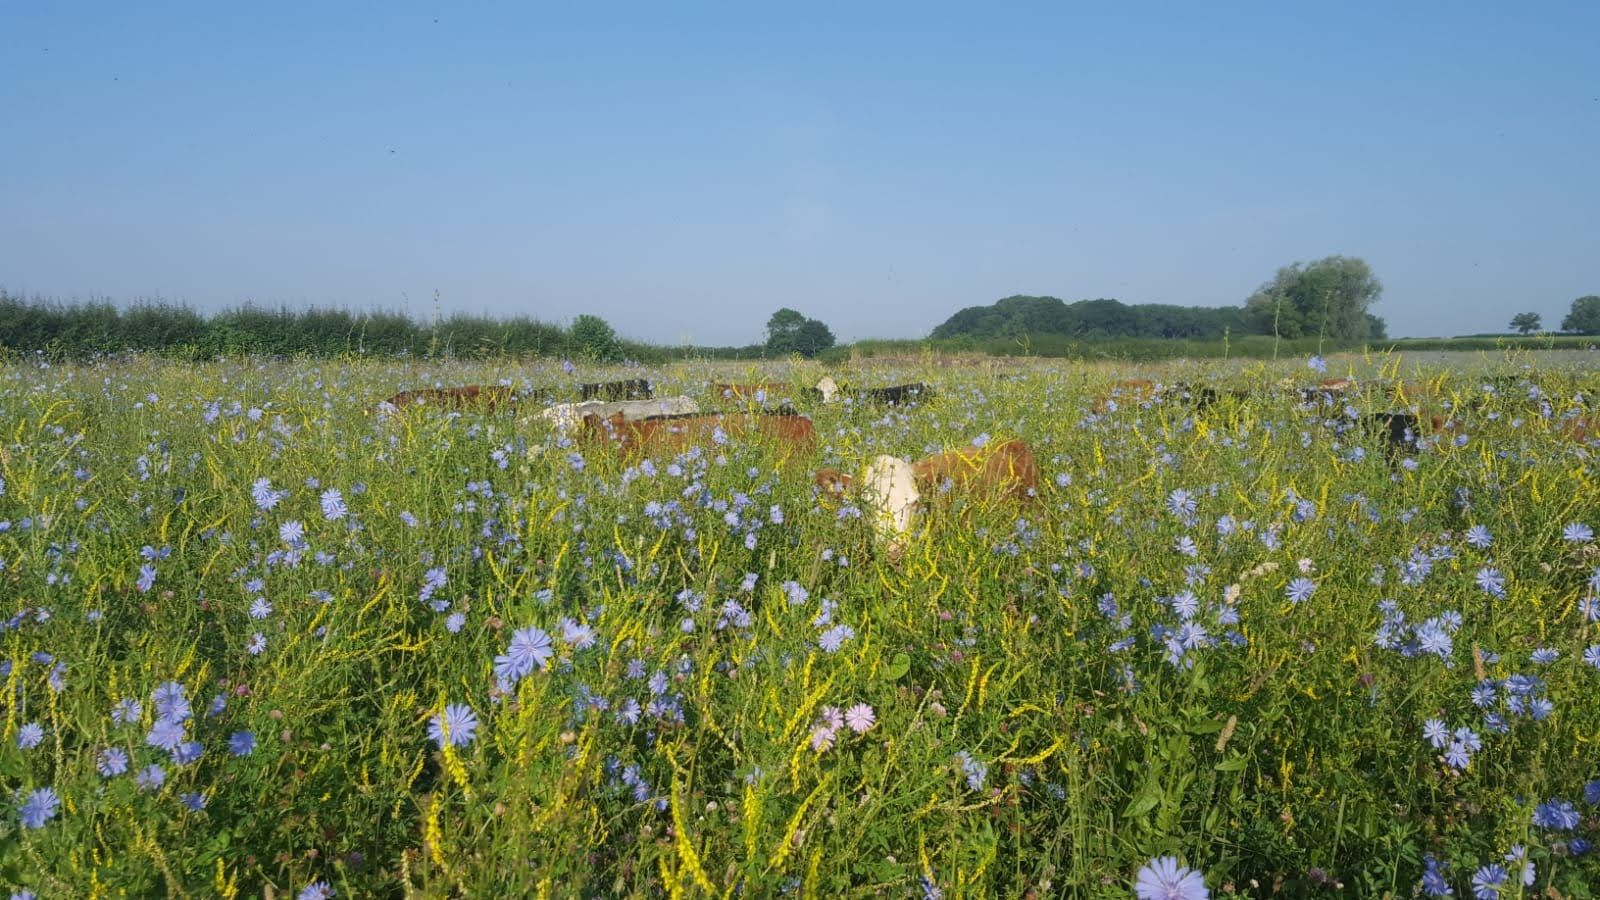 How can we transfer regenerative farming practices into our gardens?